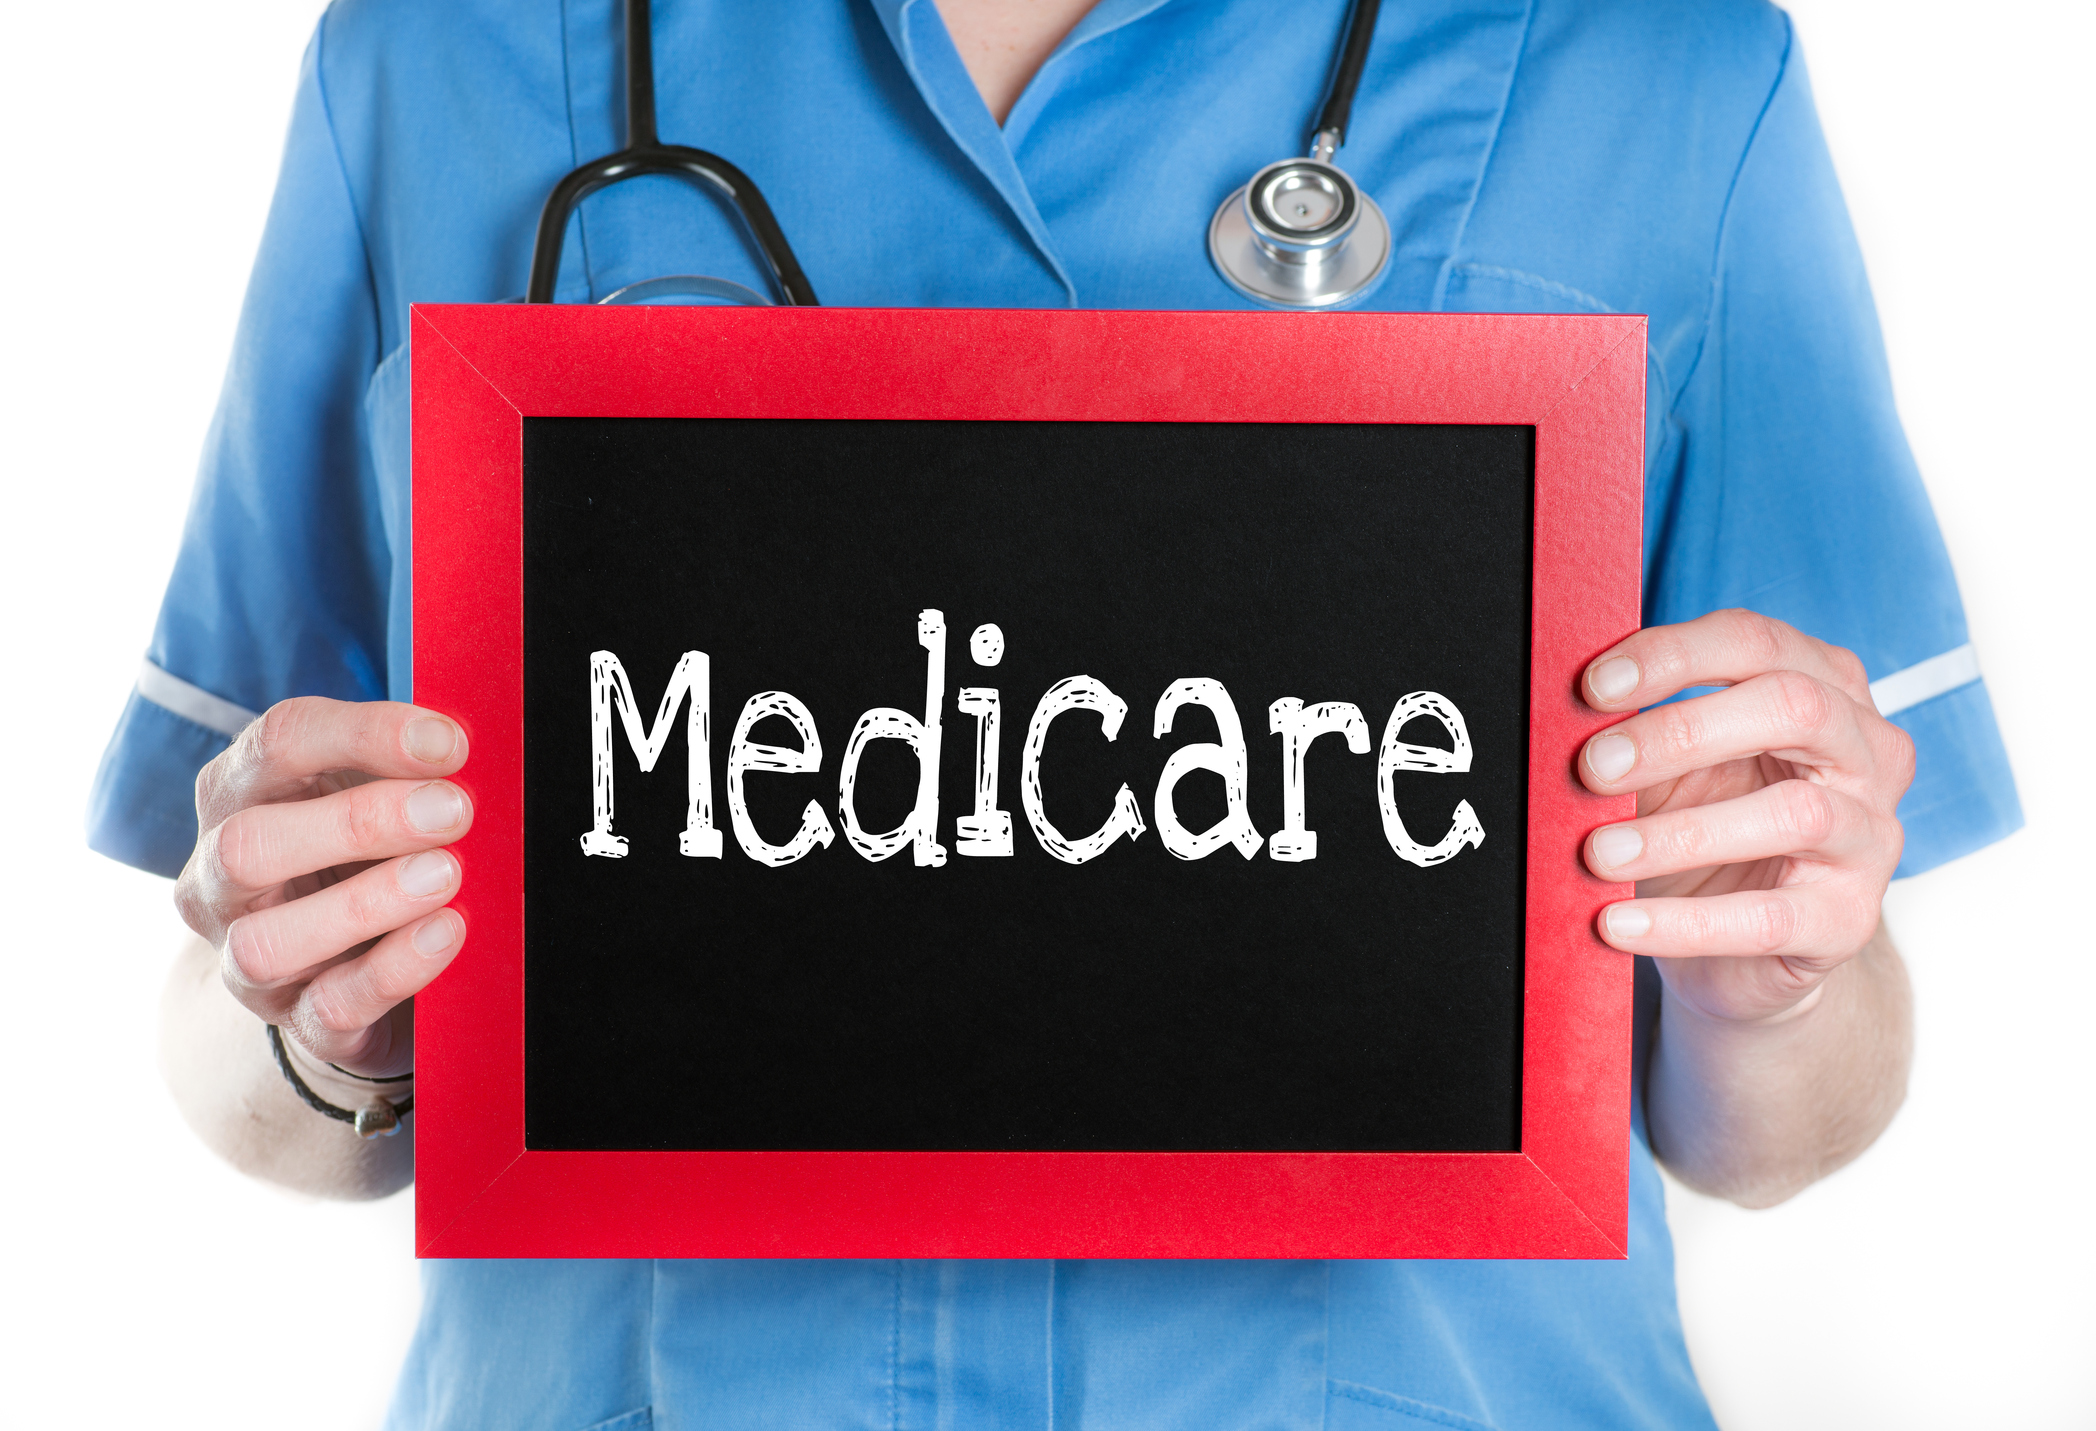 Let's talk about Medicare 101!